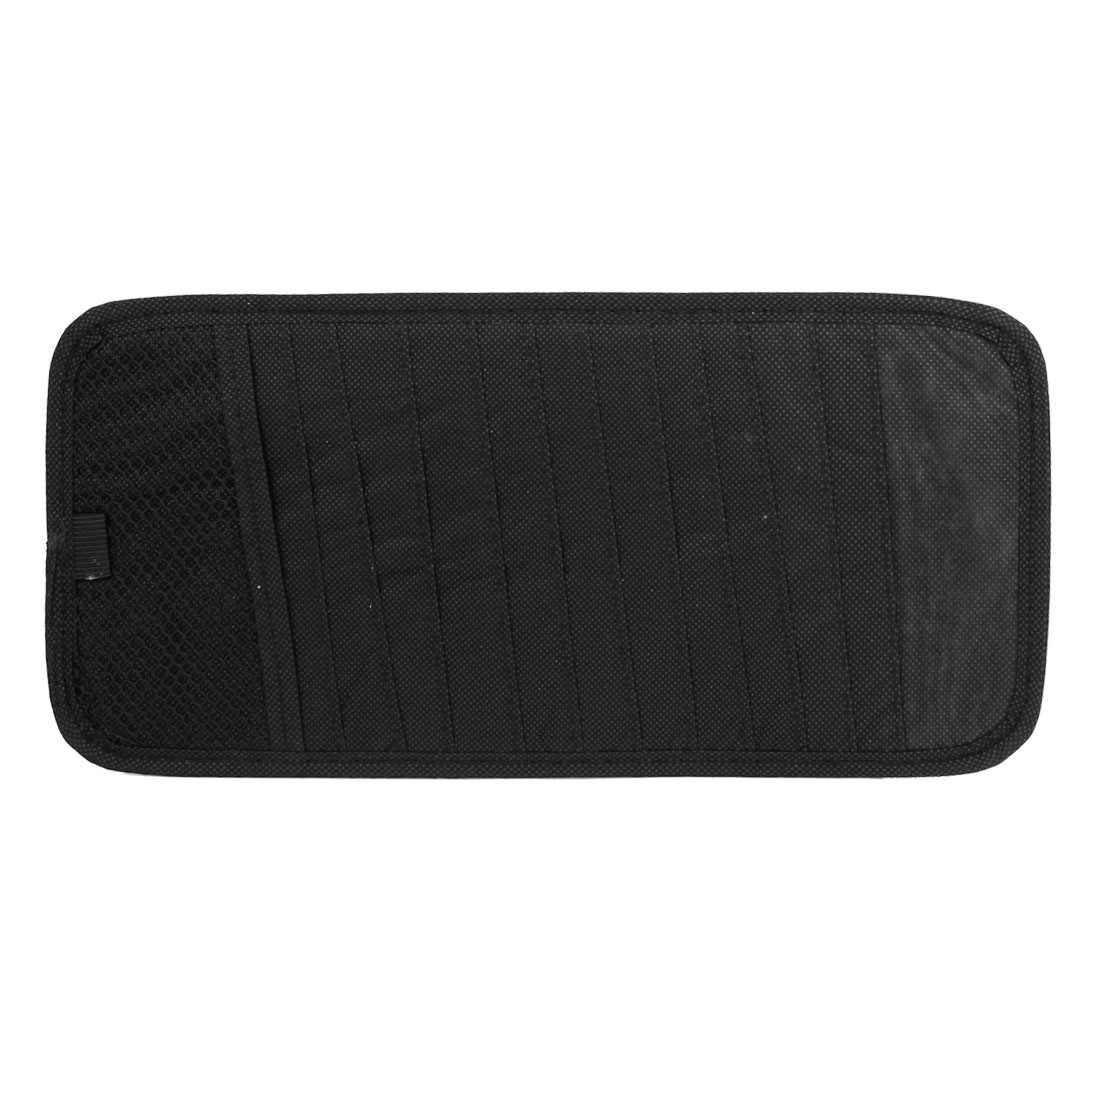 Black Nylon Rectangle 12 Capacity CD Discs Holder Bag for Auto Car